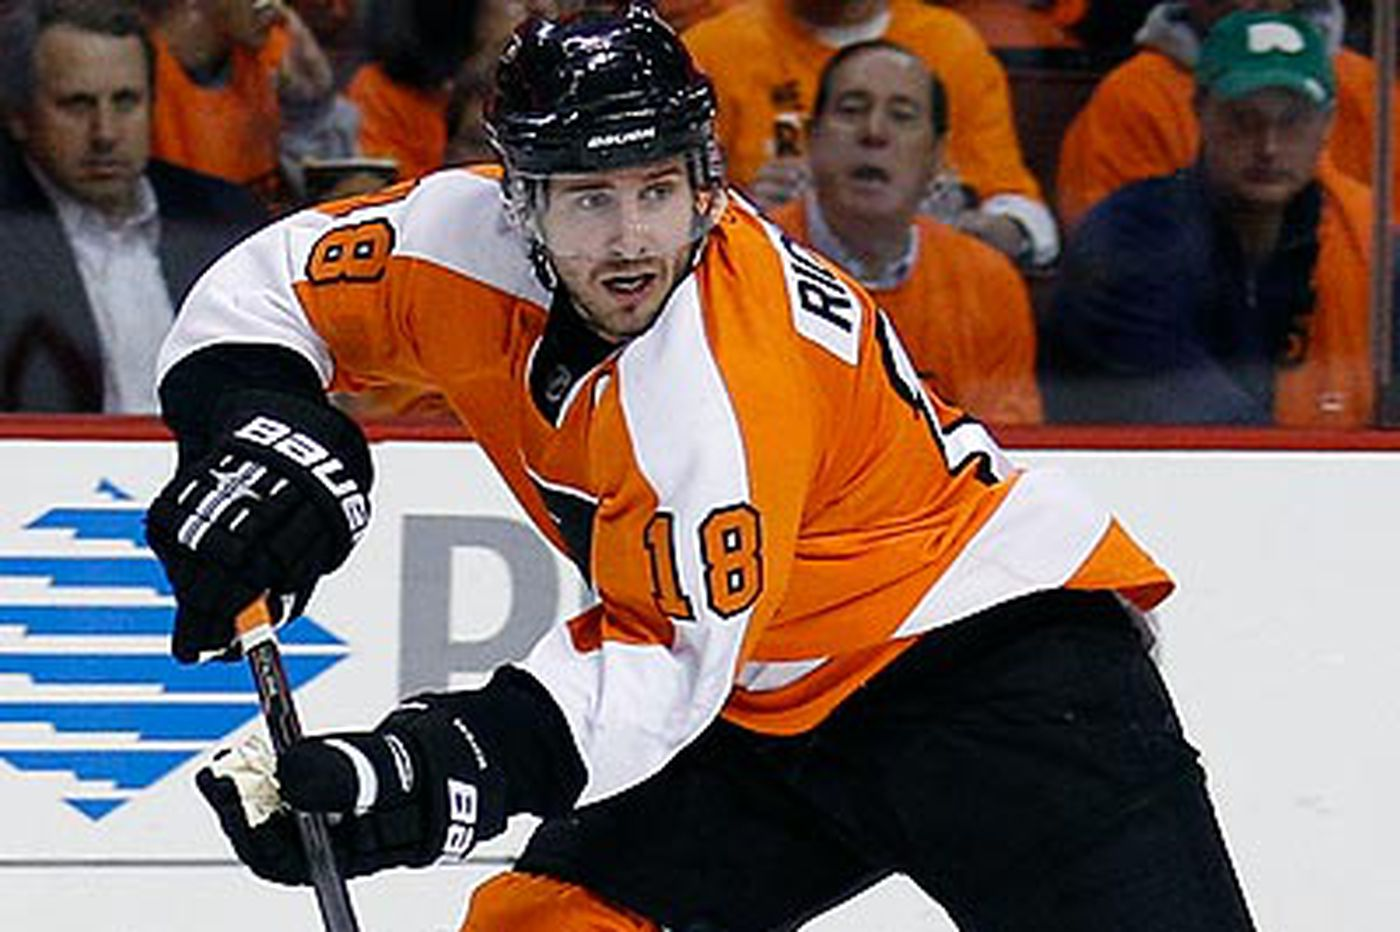 Richards' leadership with Flyers under scrutiny